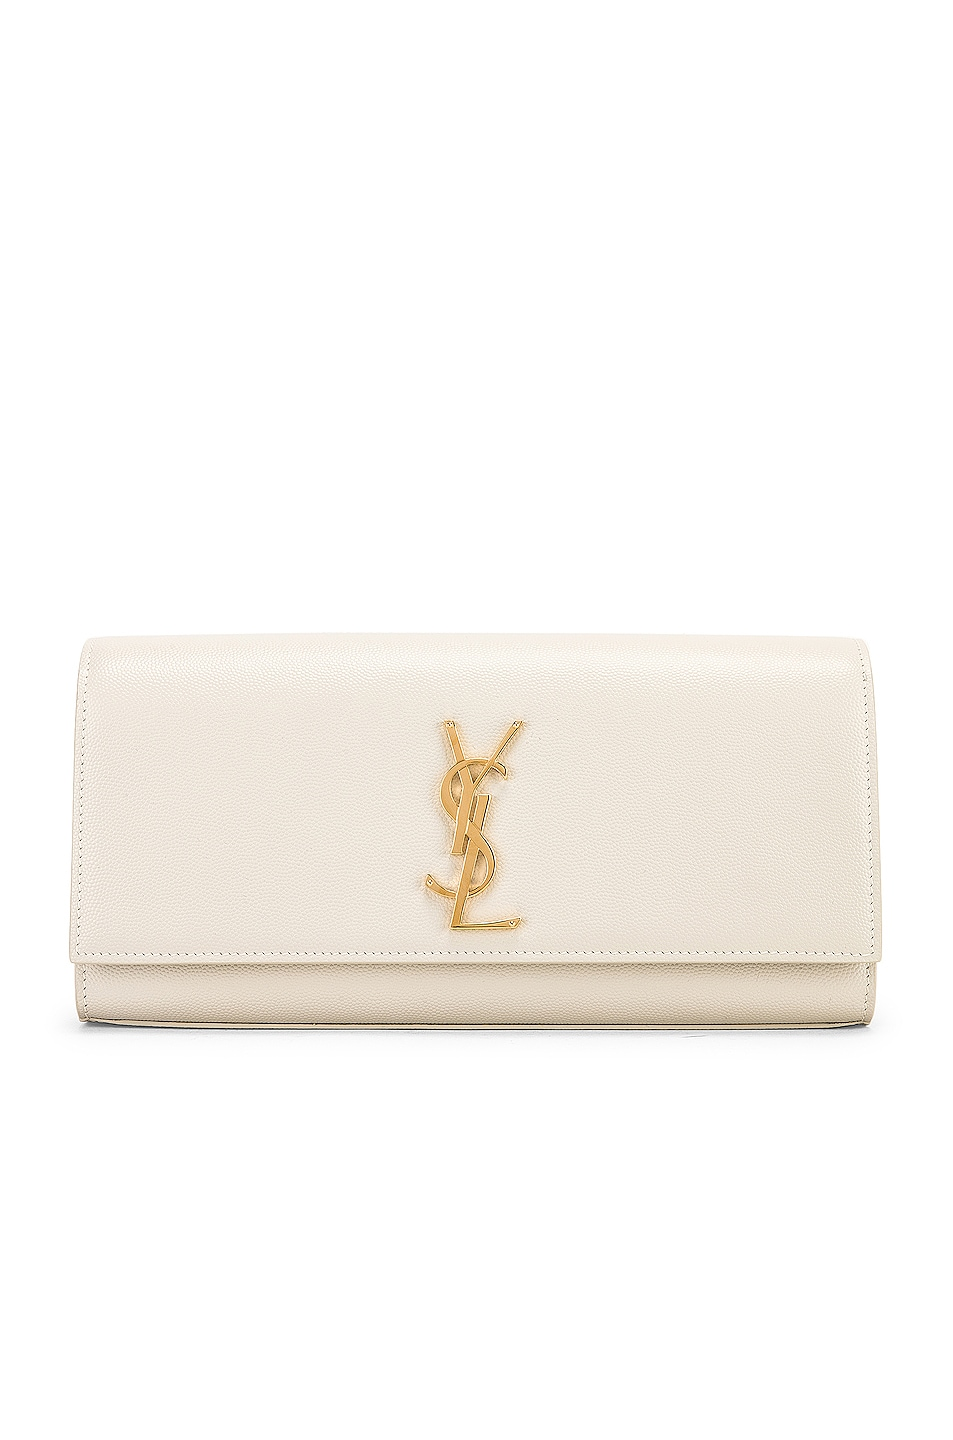 Image 1 of Saint Laurent Kate Clutch in Blanc Vintage